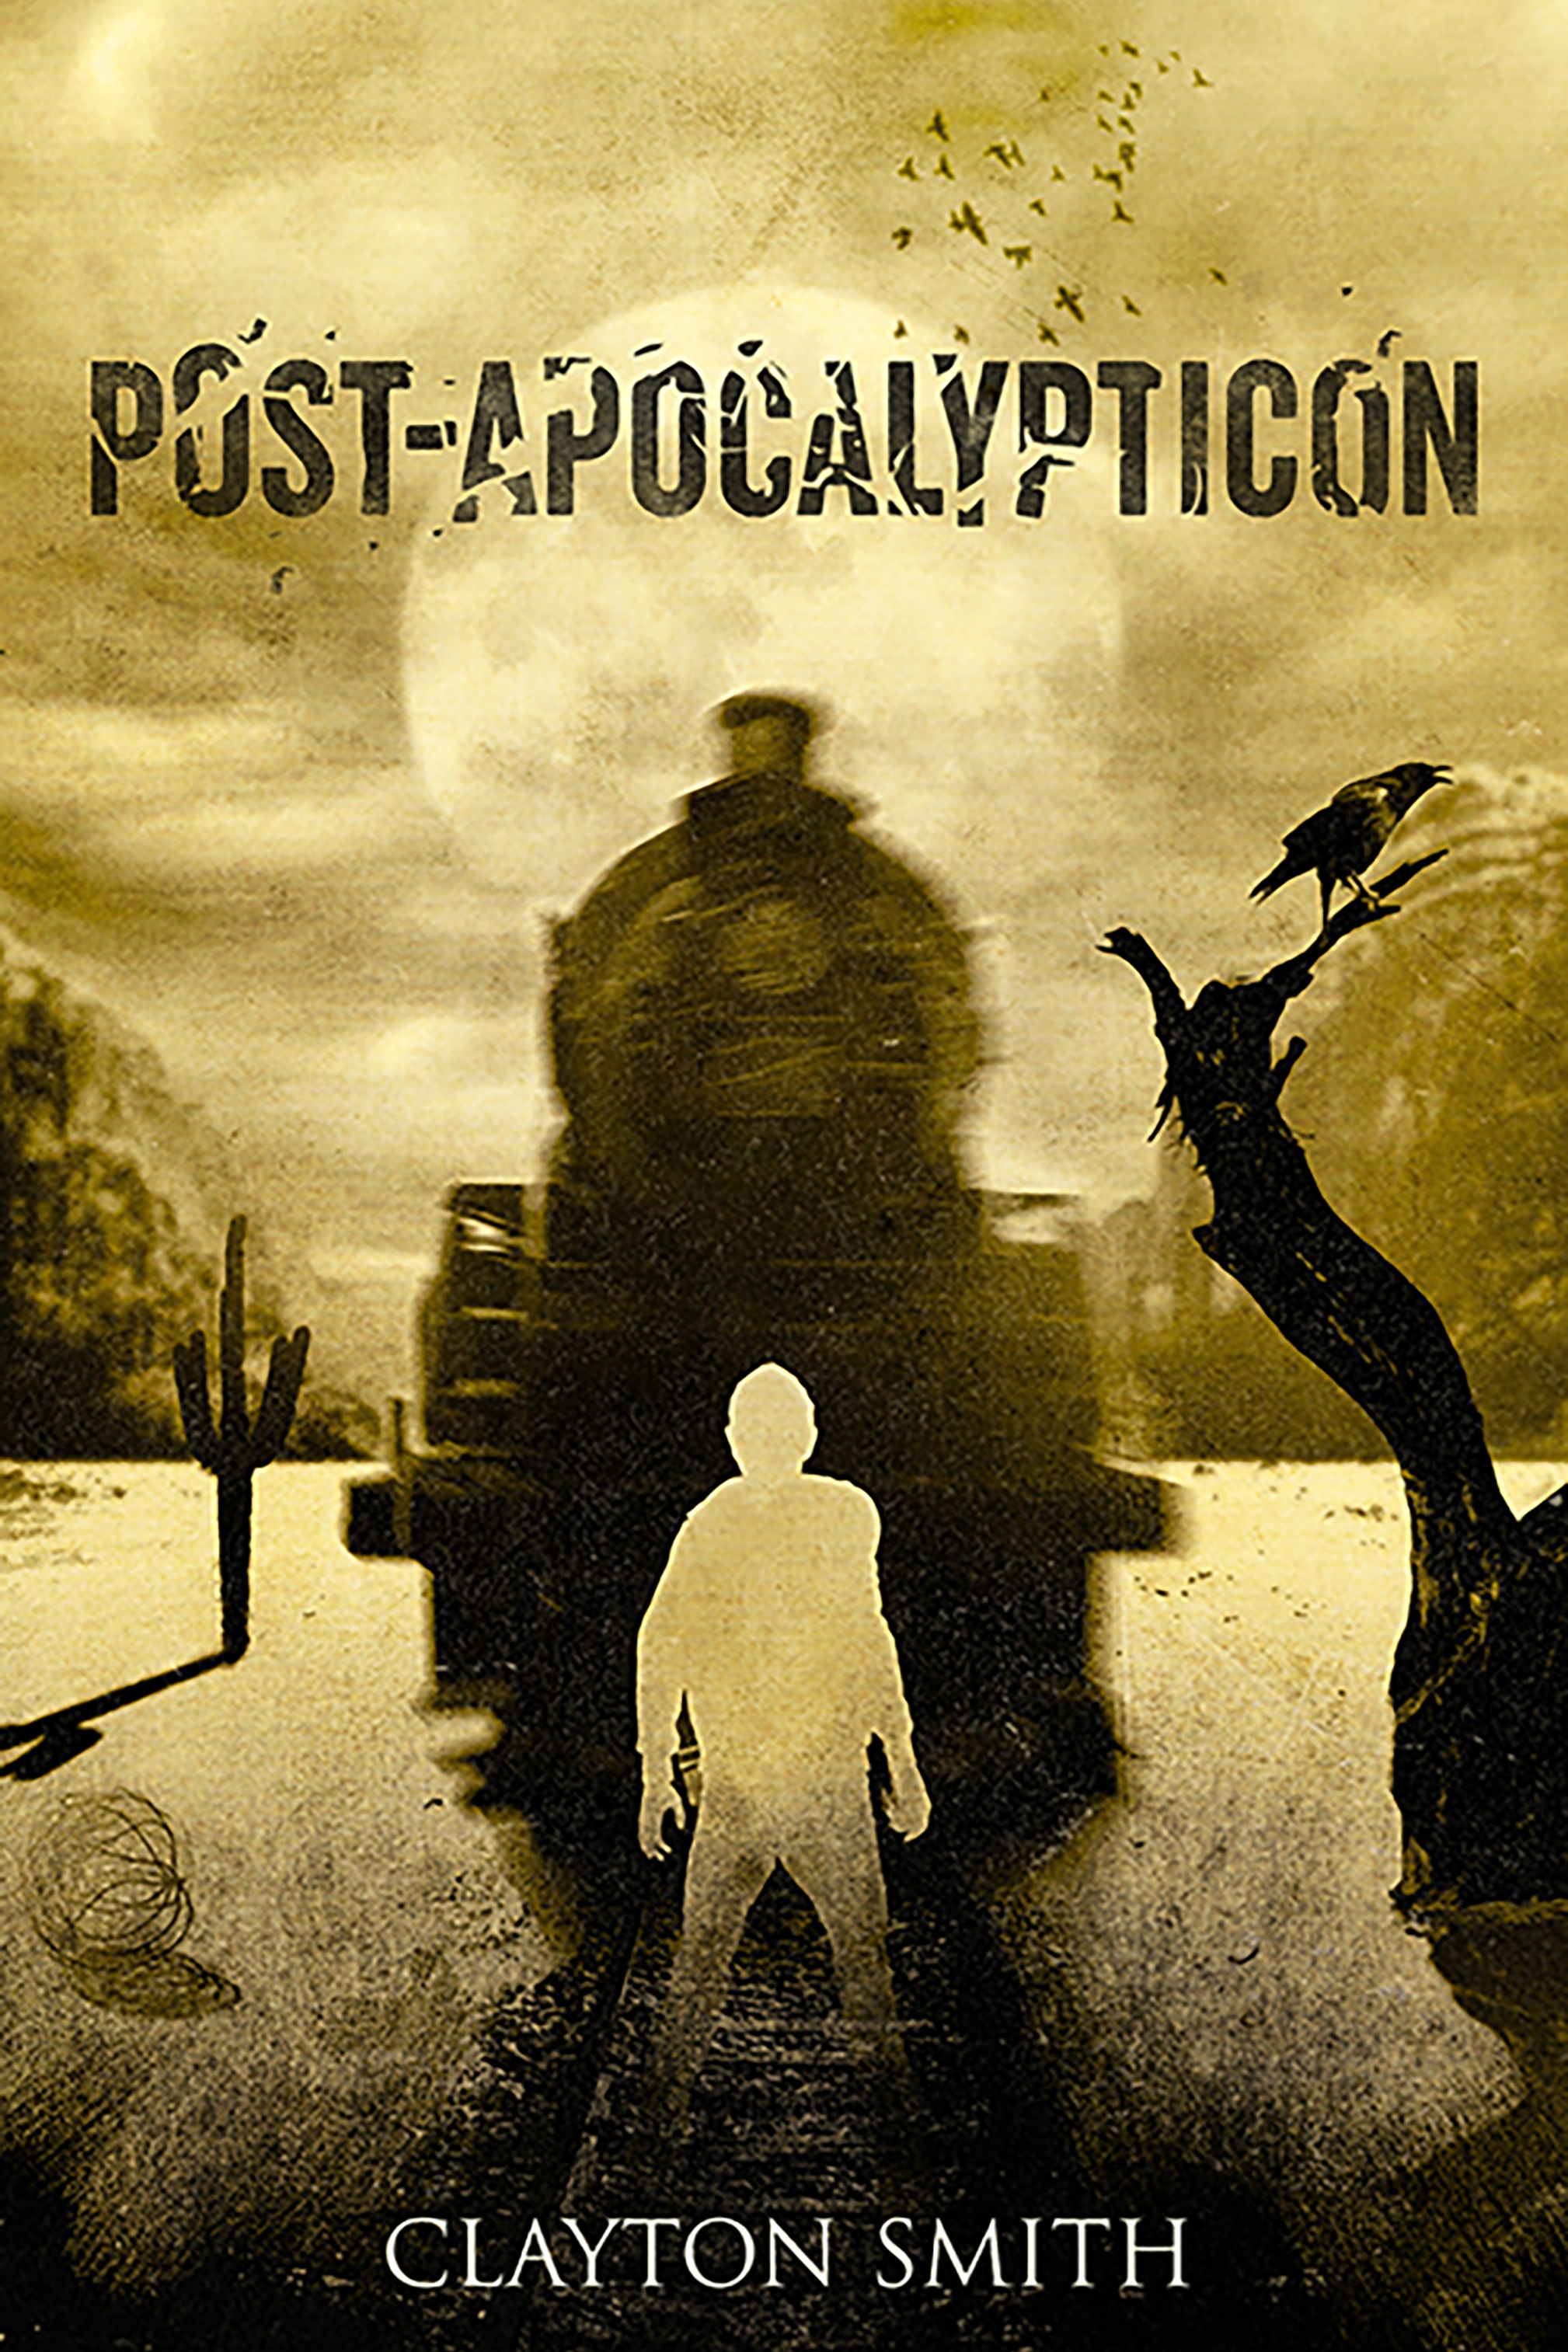 """Post-Apocalypticon - The second book in the Apocalypticon series finds Ben Fogelvee on a post-apocalyptic desert adventure, fighting for survival against snakes and cults and messengers and cliff-dwellers and all manner of after-doomsday weirdness in an adventure that's """"hilarious, harrowing, and heart-wrenching…the perfect sequel!"""""""